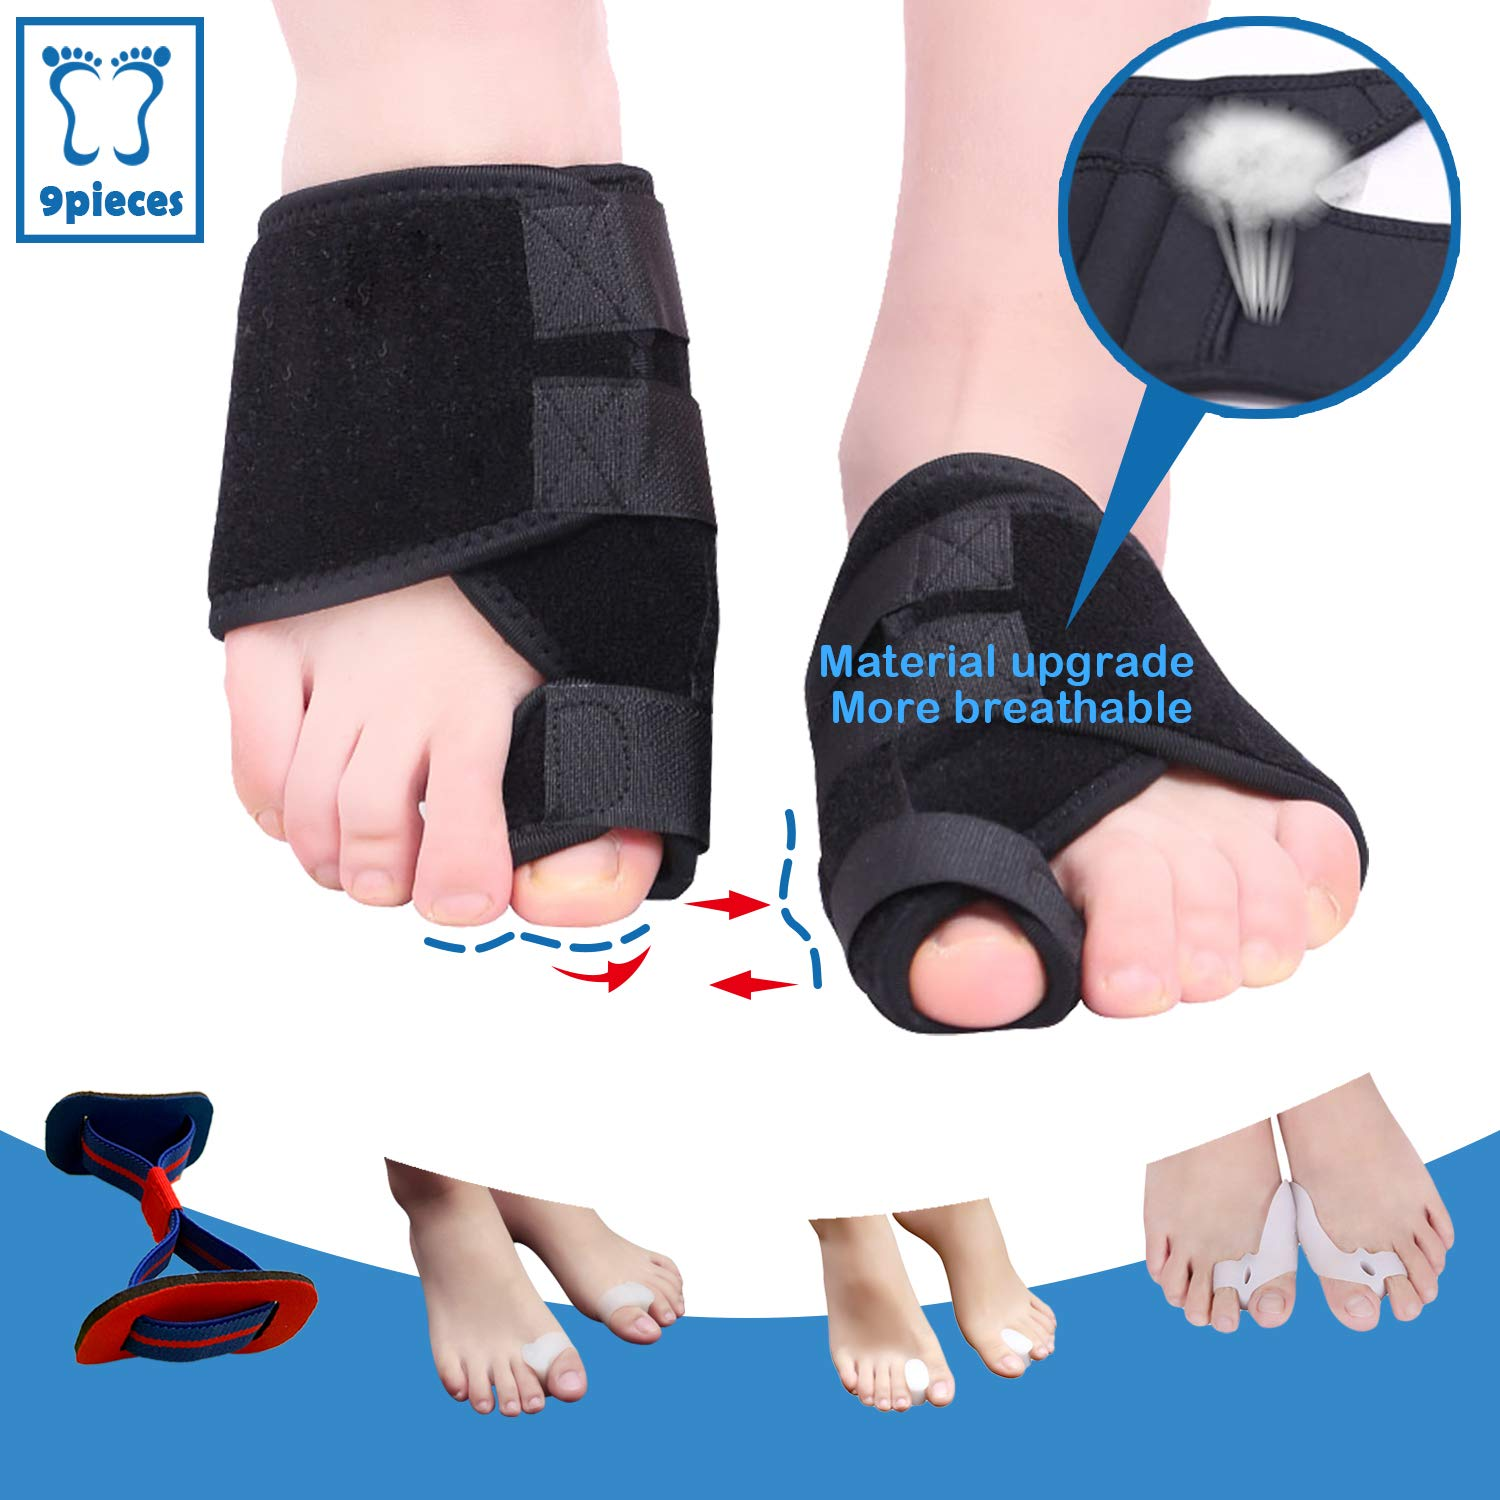 Bunion Corrector and Toe Separators Suit,Treat Pain in Hallux Valgus,Orthopedic Bunion Splint,Adjustable Orthopedic Big Toe Straighteners Foot,Big Toe Exercise Strap,Overlapping Toe, Toe Spacers,9Pcs by LiAon